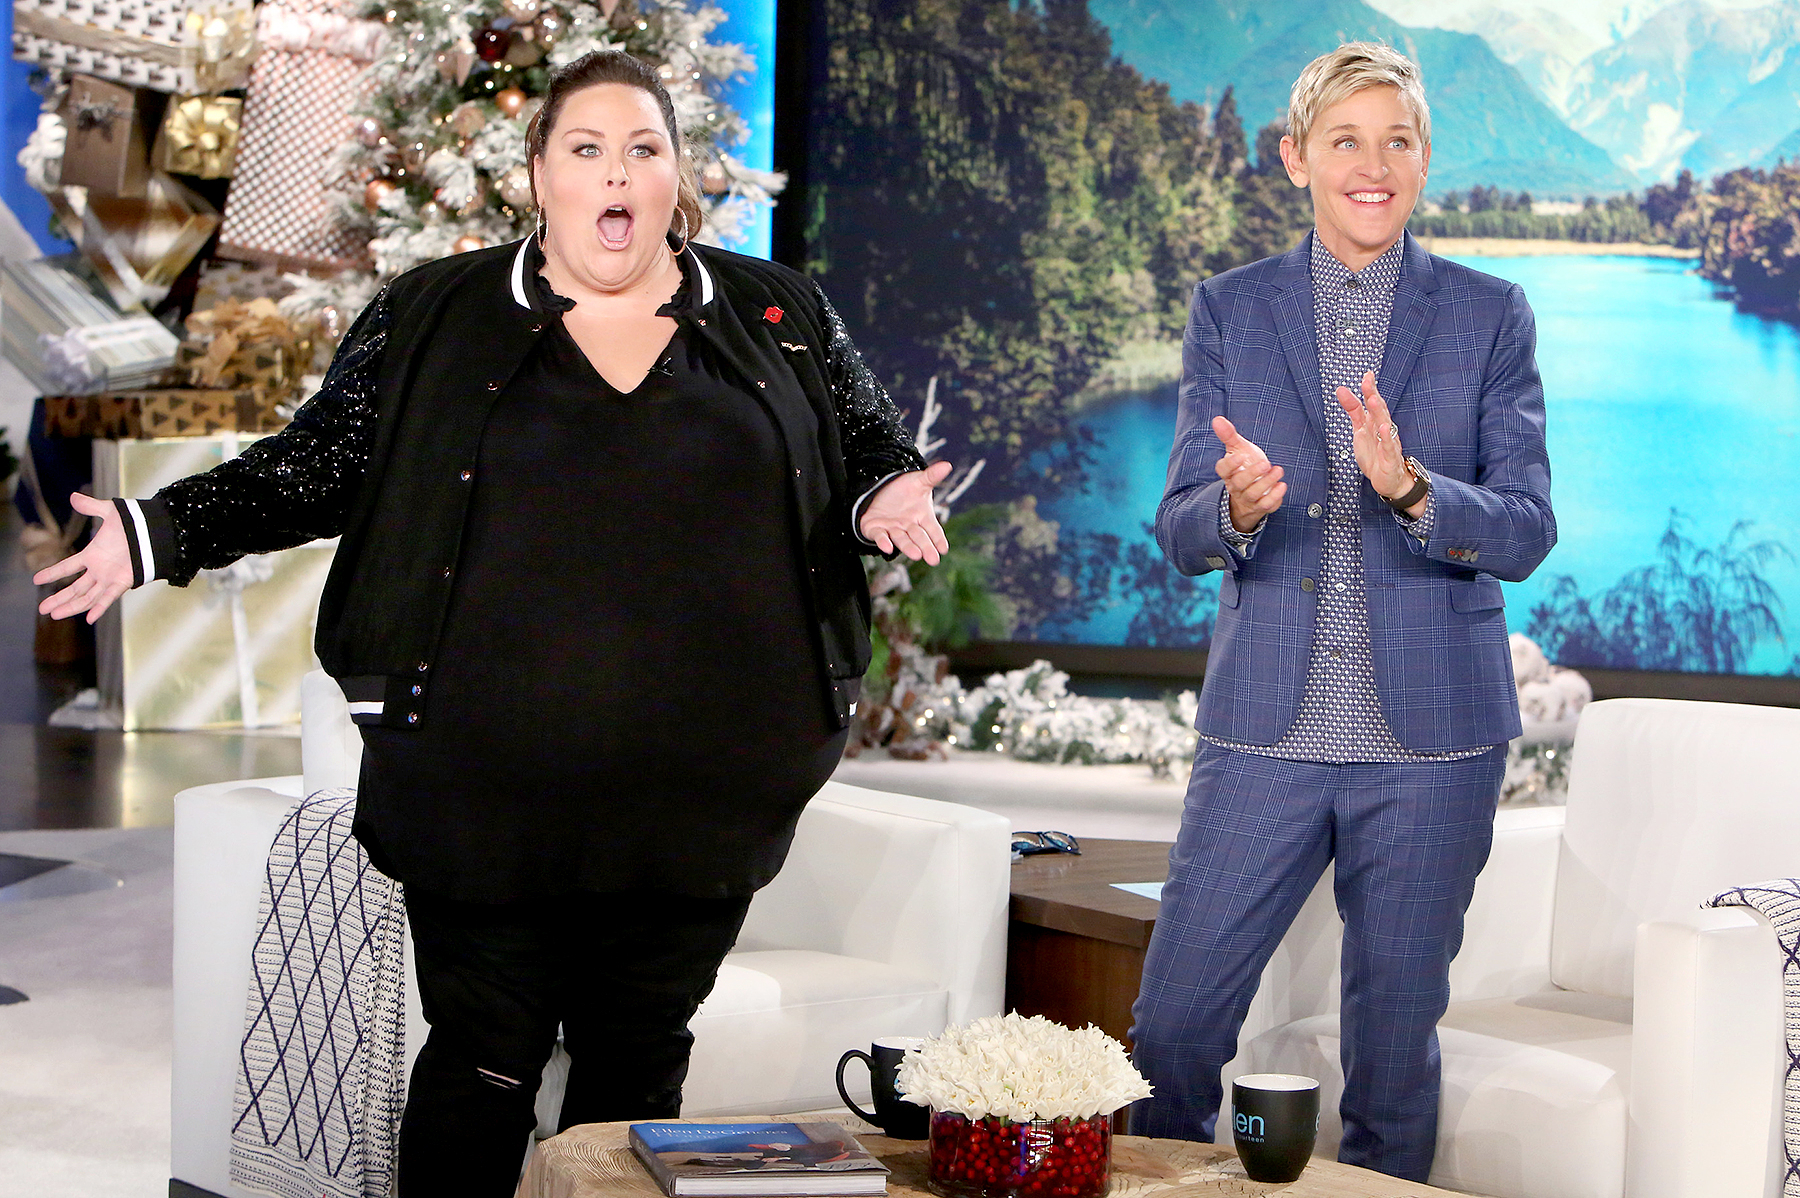 Chrissy Metz and Ellen DeGeneres